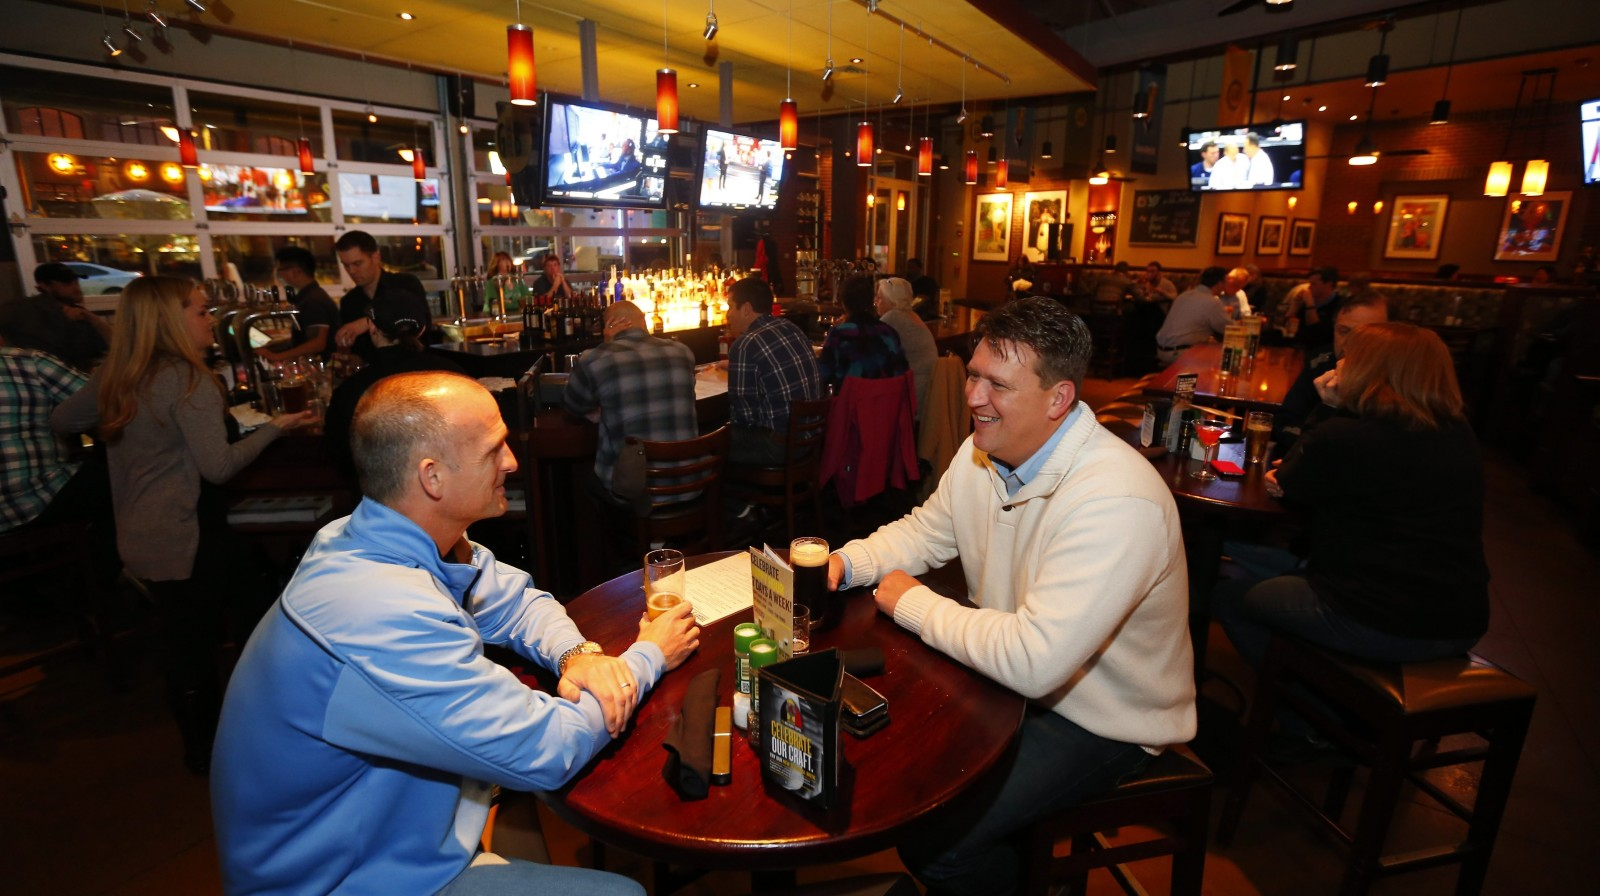 Gordon Biersch will participate in the Taste of Galleria. (Sharon Cantillon/Buffalo News file photo)